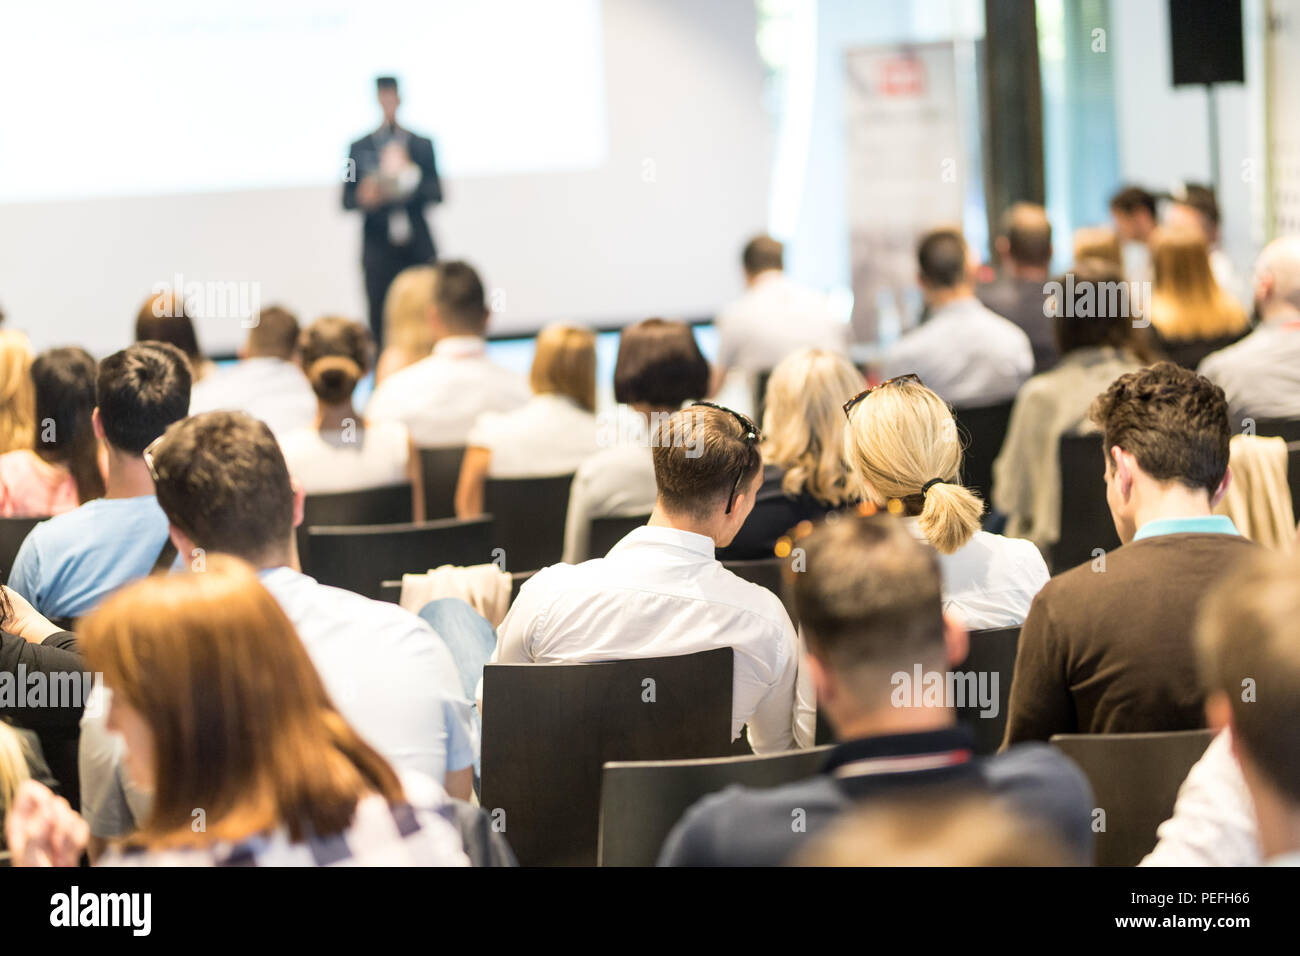 Business speaker giving a talk at business conference event. - Stock Image